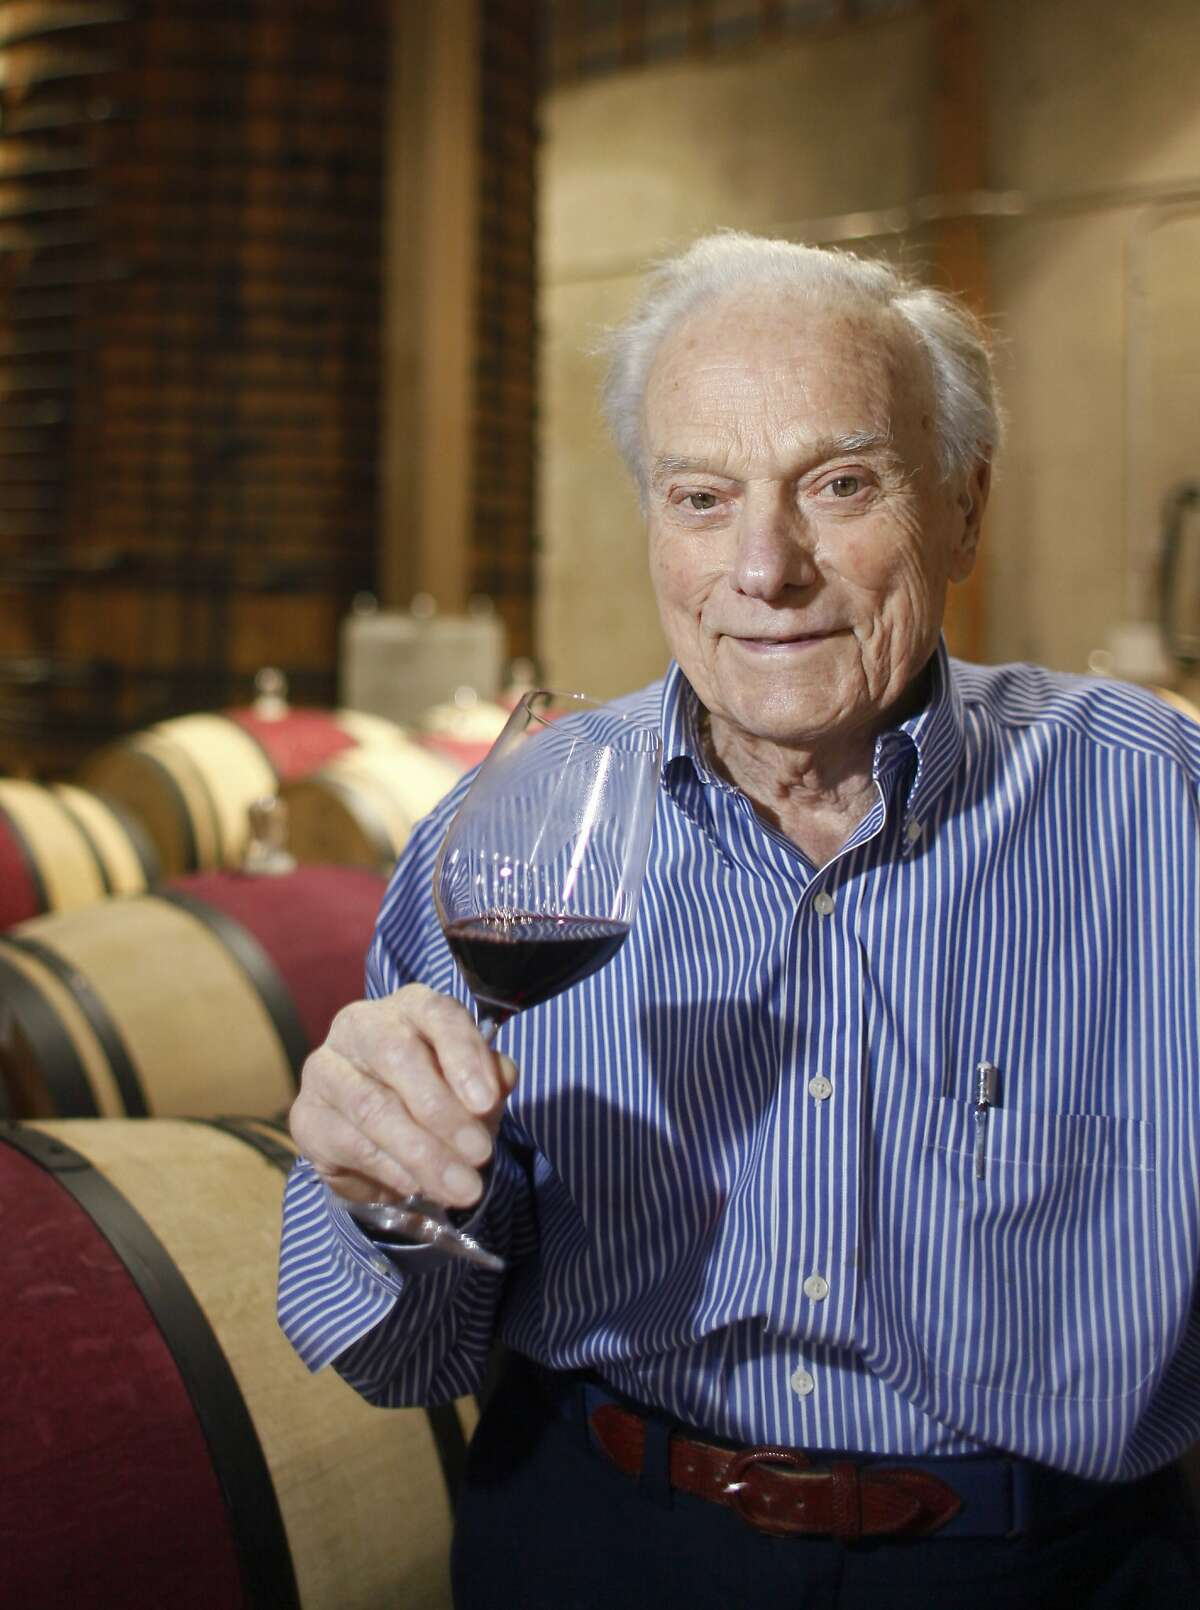 In this Nov. 4, 2009 file photo, Peter Mondavi holds a glass of Cabernet Sauvignon inside the original Redwood Cellar at the Charles Krug Winery in St. Helena, Calif.